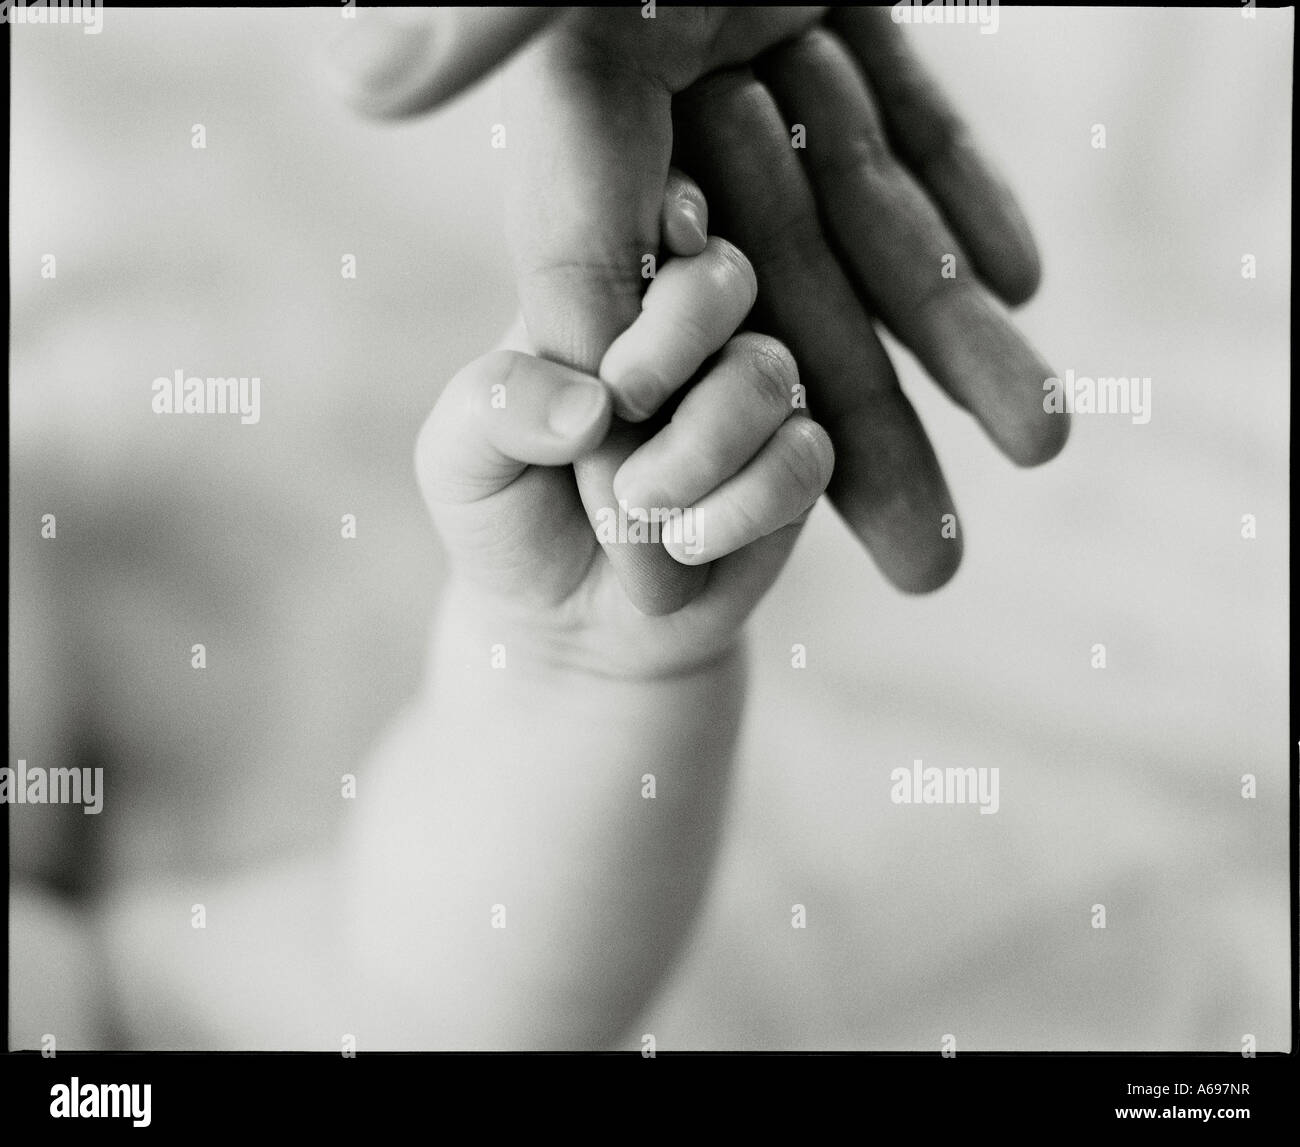 Baby's hand holding parent's finger. - Stock Image